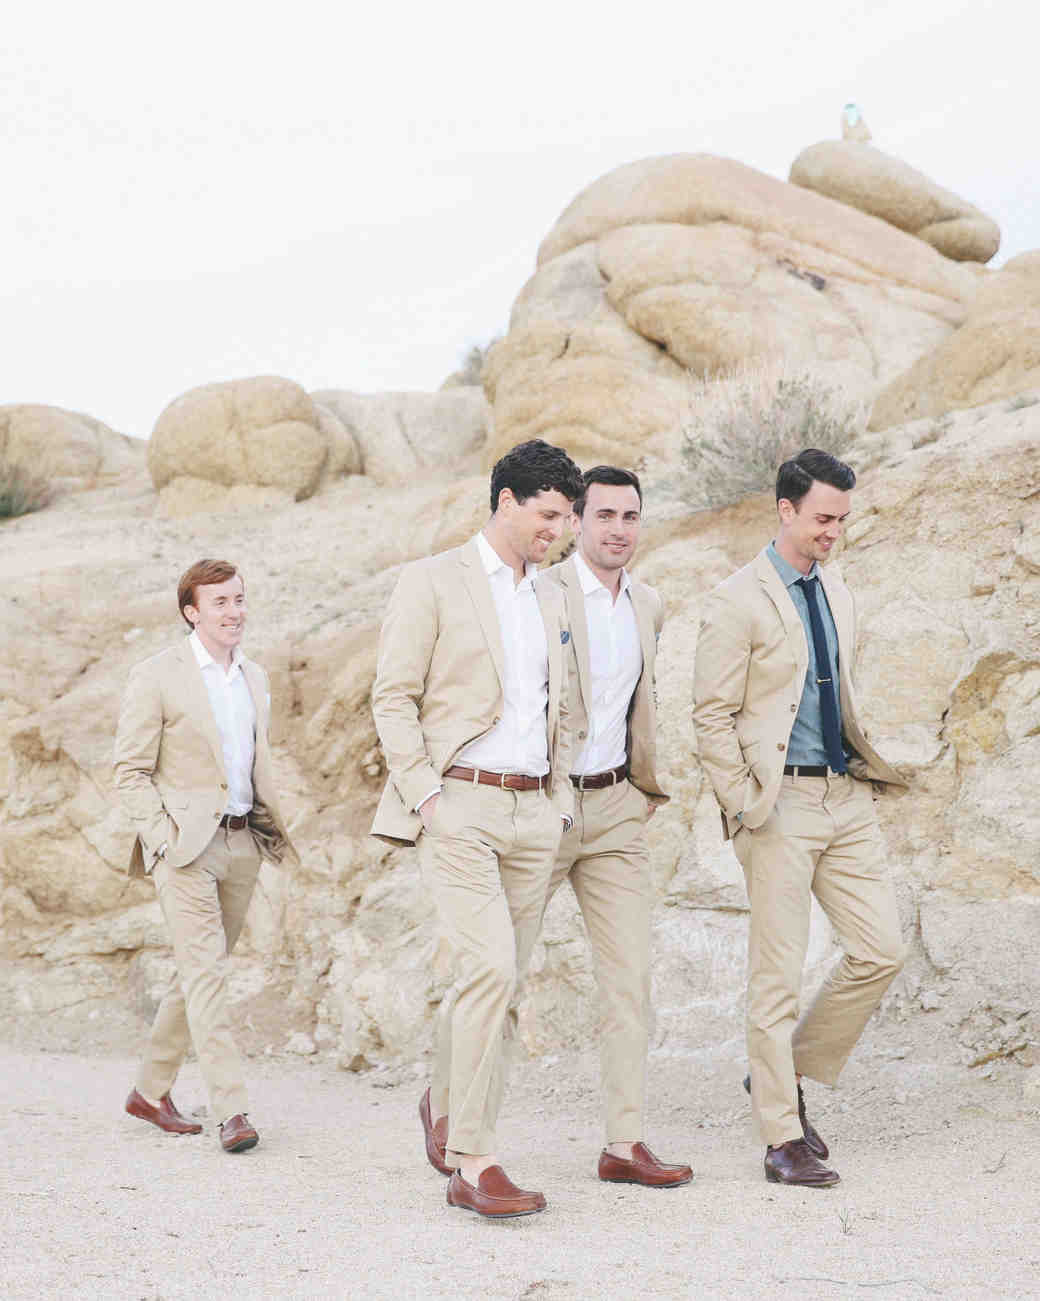 Groomsmen Walking Around Venue